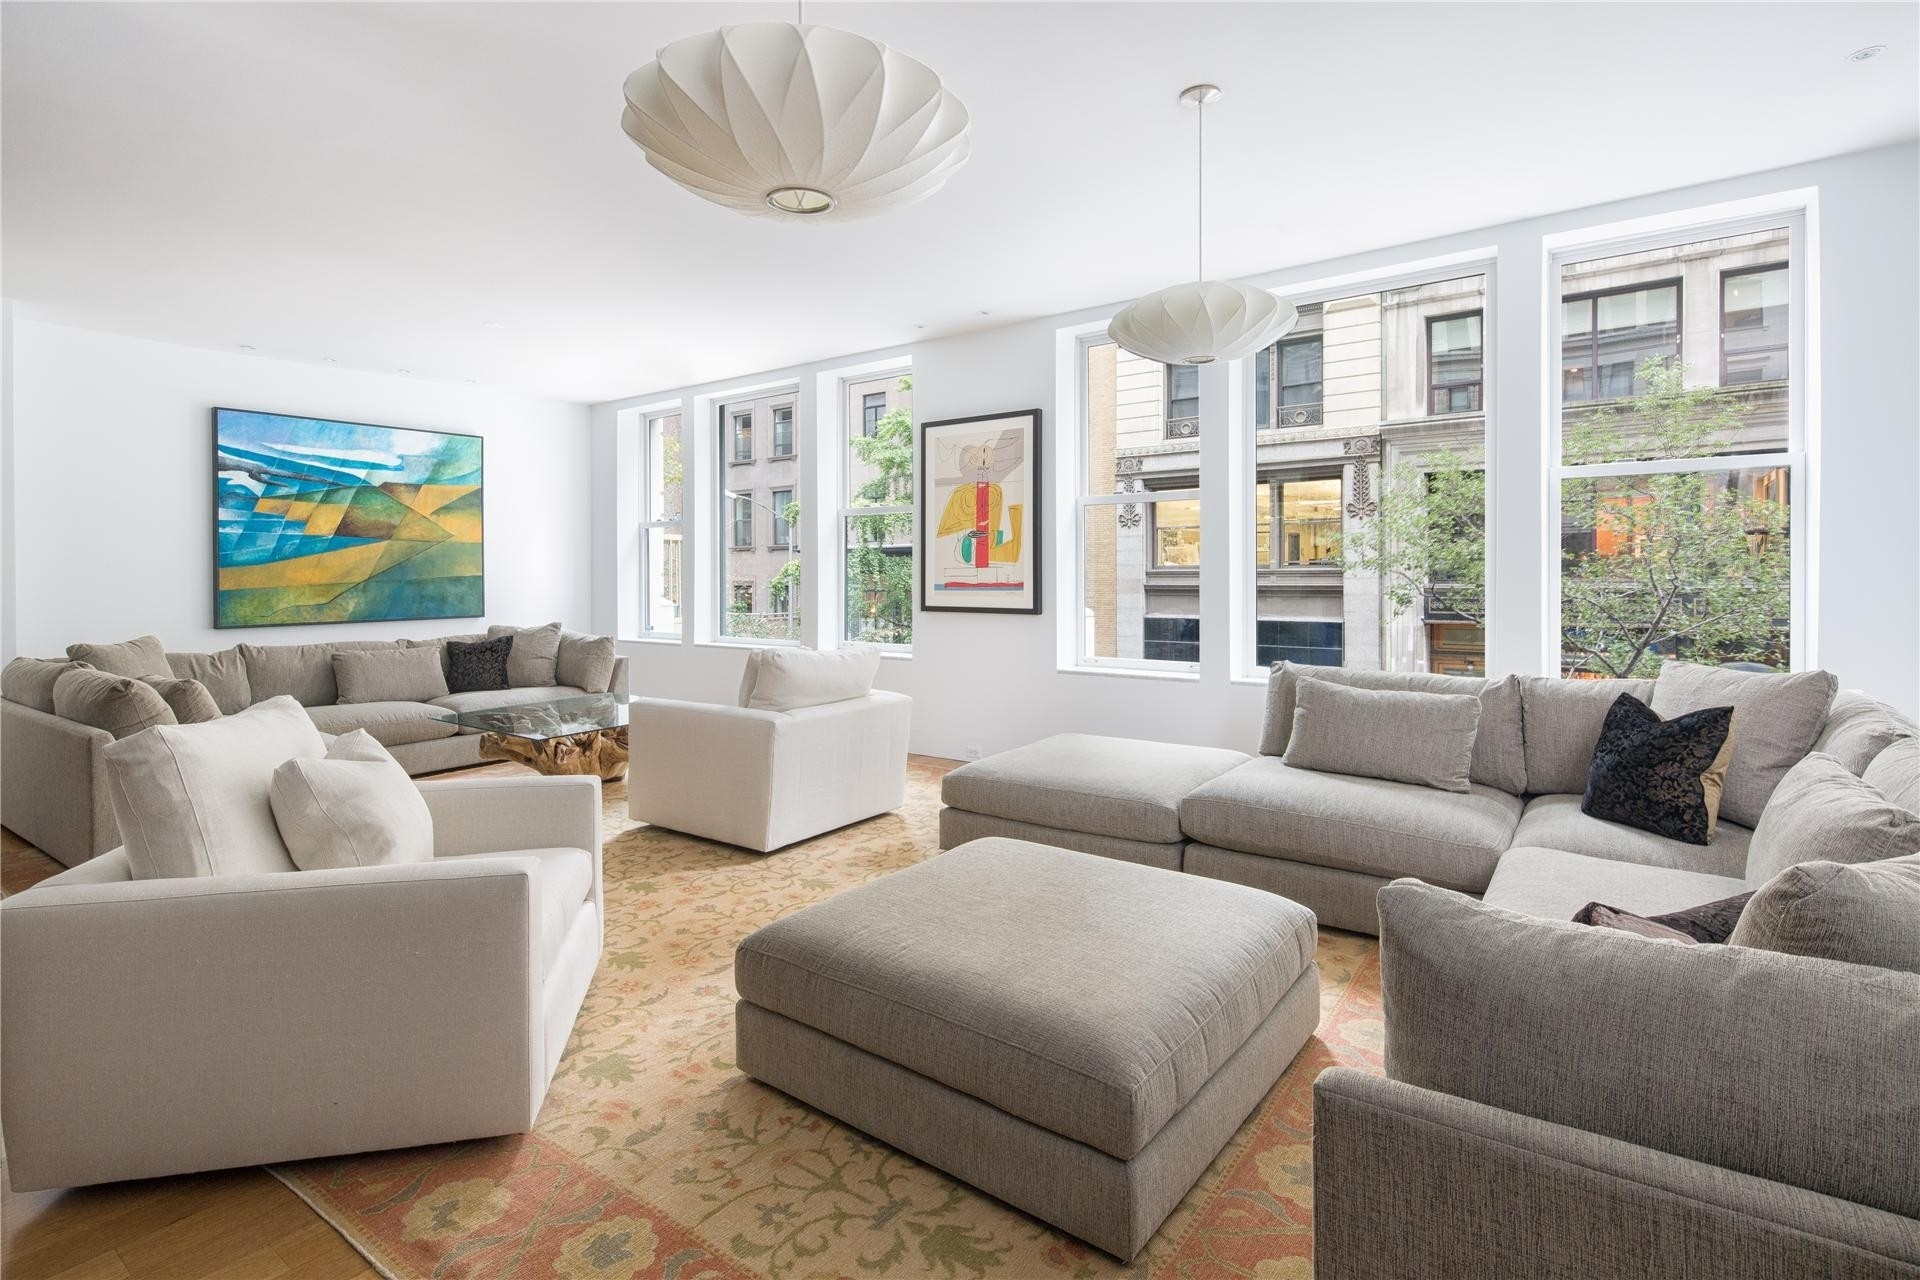 14. L'Elysee Condo здание в 27 East 22nd St, Flatiron District, New York, NY